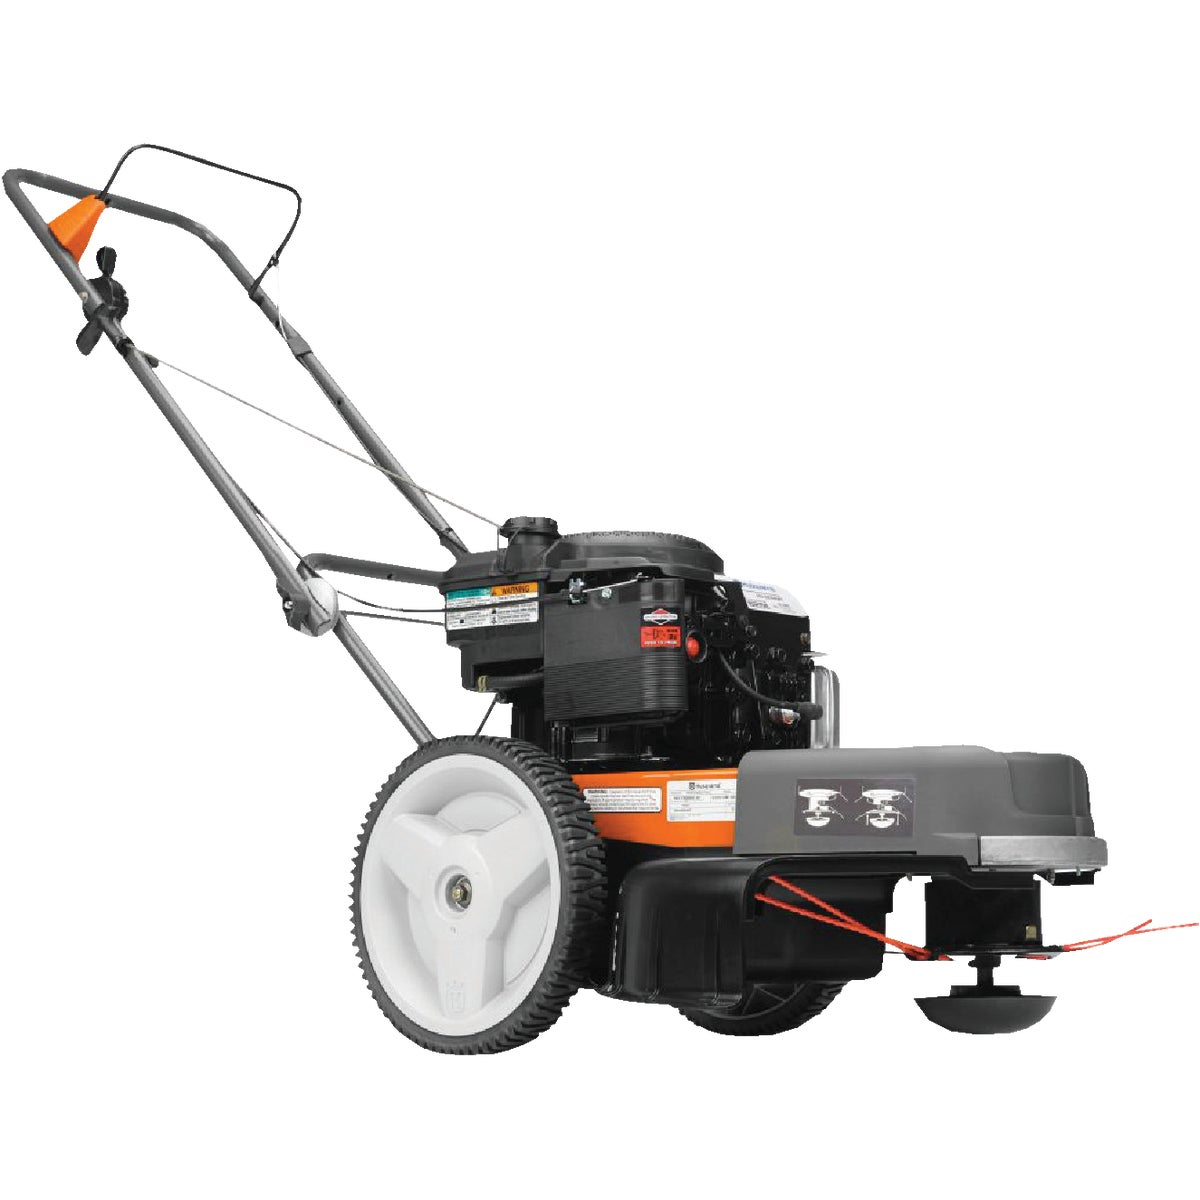 "22"" HIGH WHEELED TRIMMER"